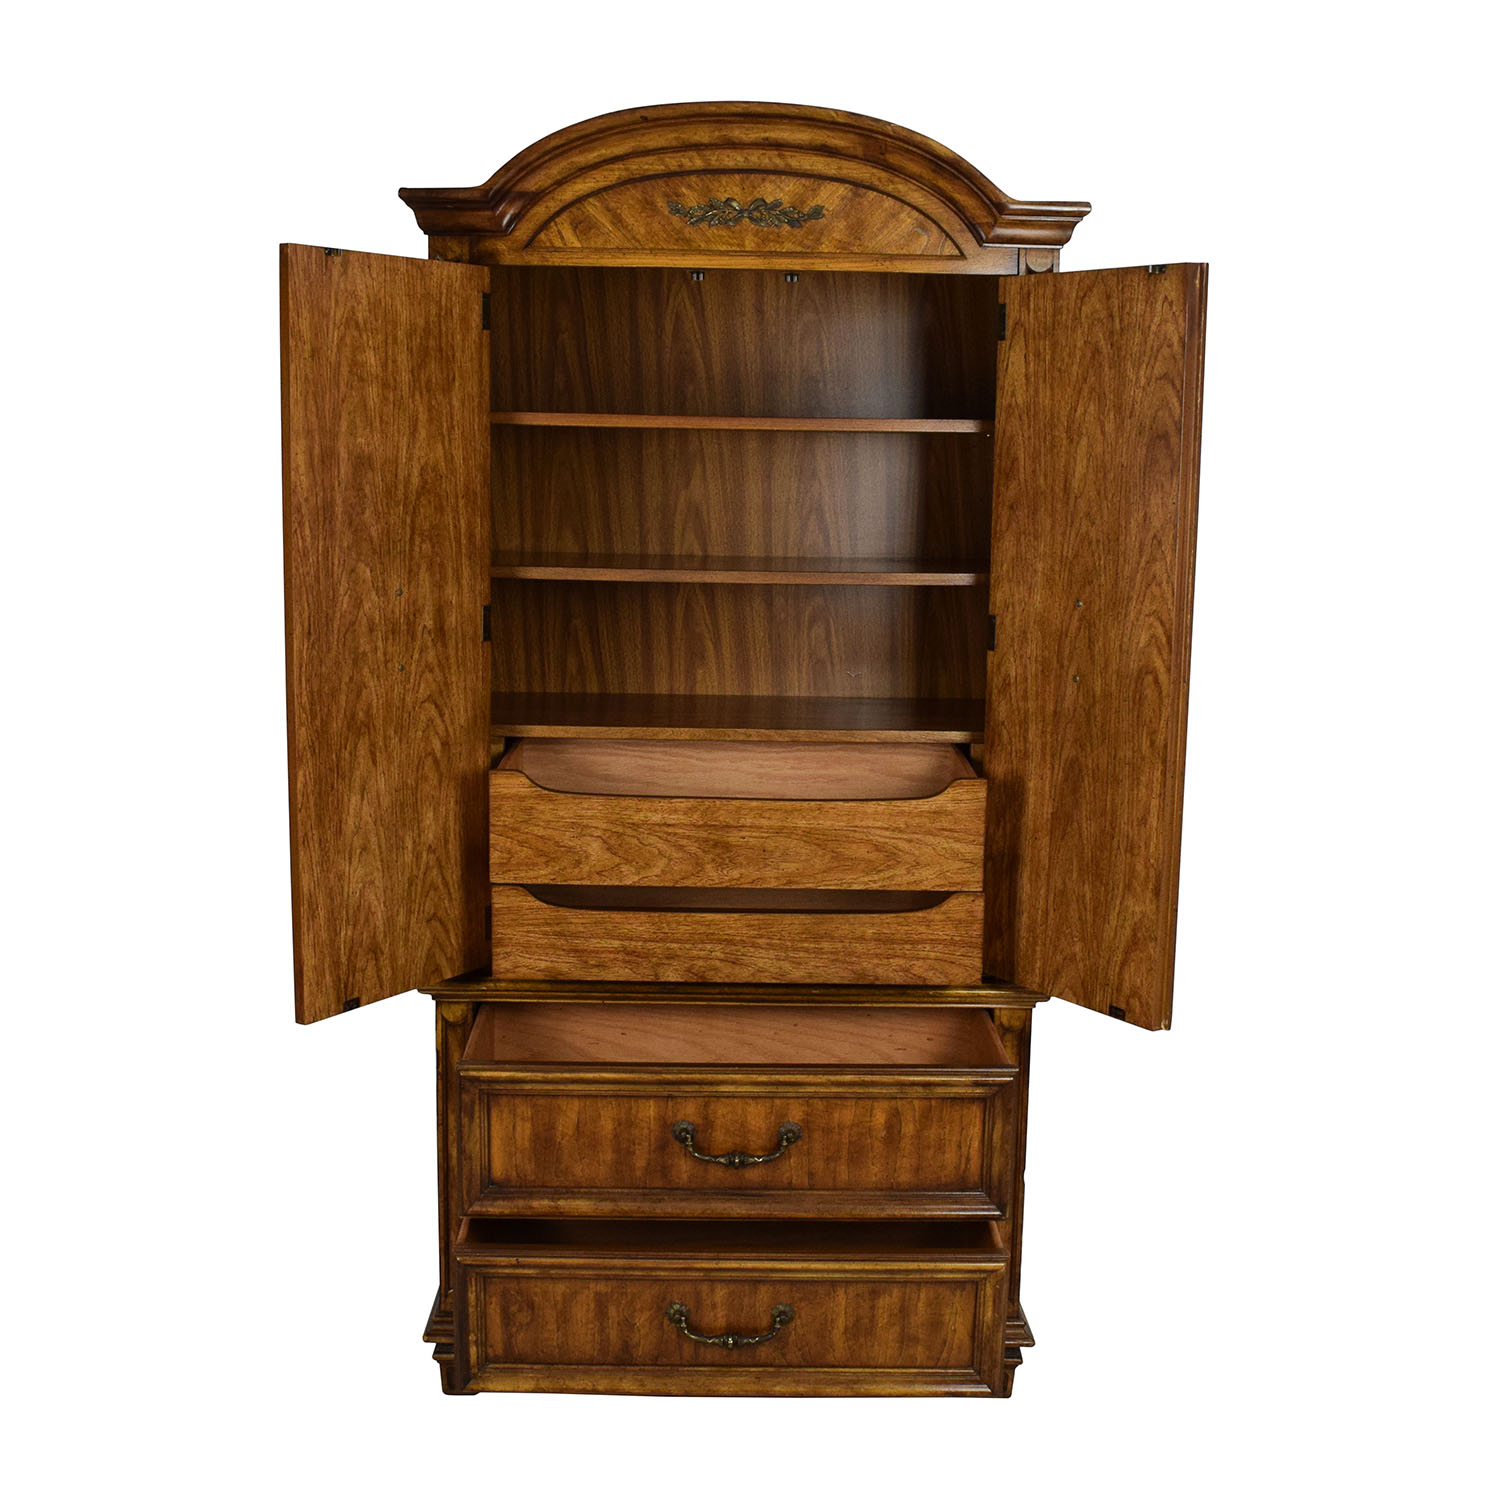 Stanley Furniture Stanley Furniture Armoire Wardrobe